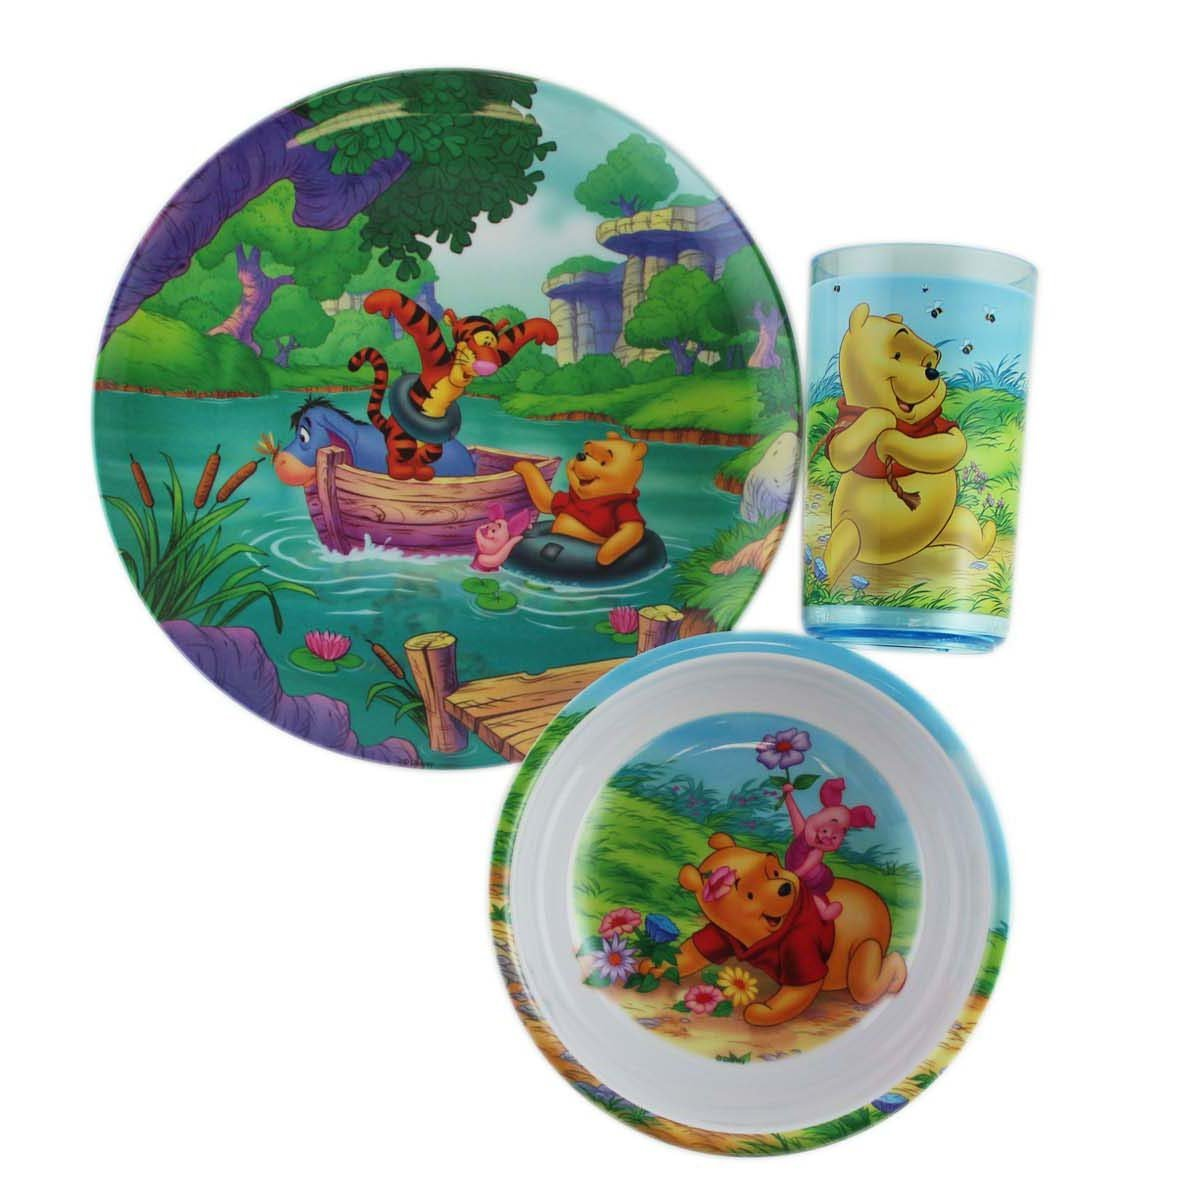 Disneyu0027s Winnie the Pooh Bowl Plate and Cup Childrenu0027s Dinnerware Set - Walmart.com  sc 1 st  Walmart & Disneyu0027s Winnie the Pooh Bowl Plate and Cup Childrenu0027s Dinnerware ...